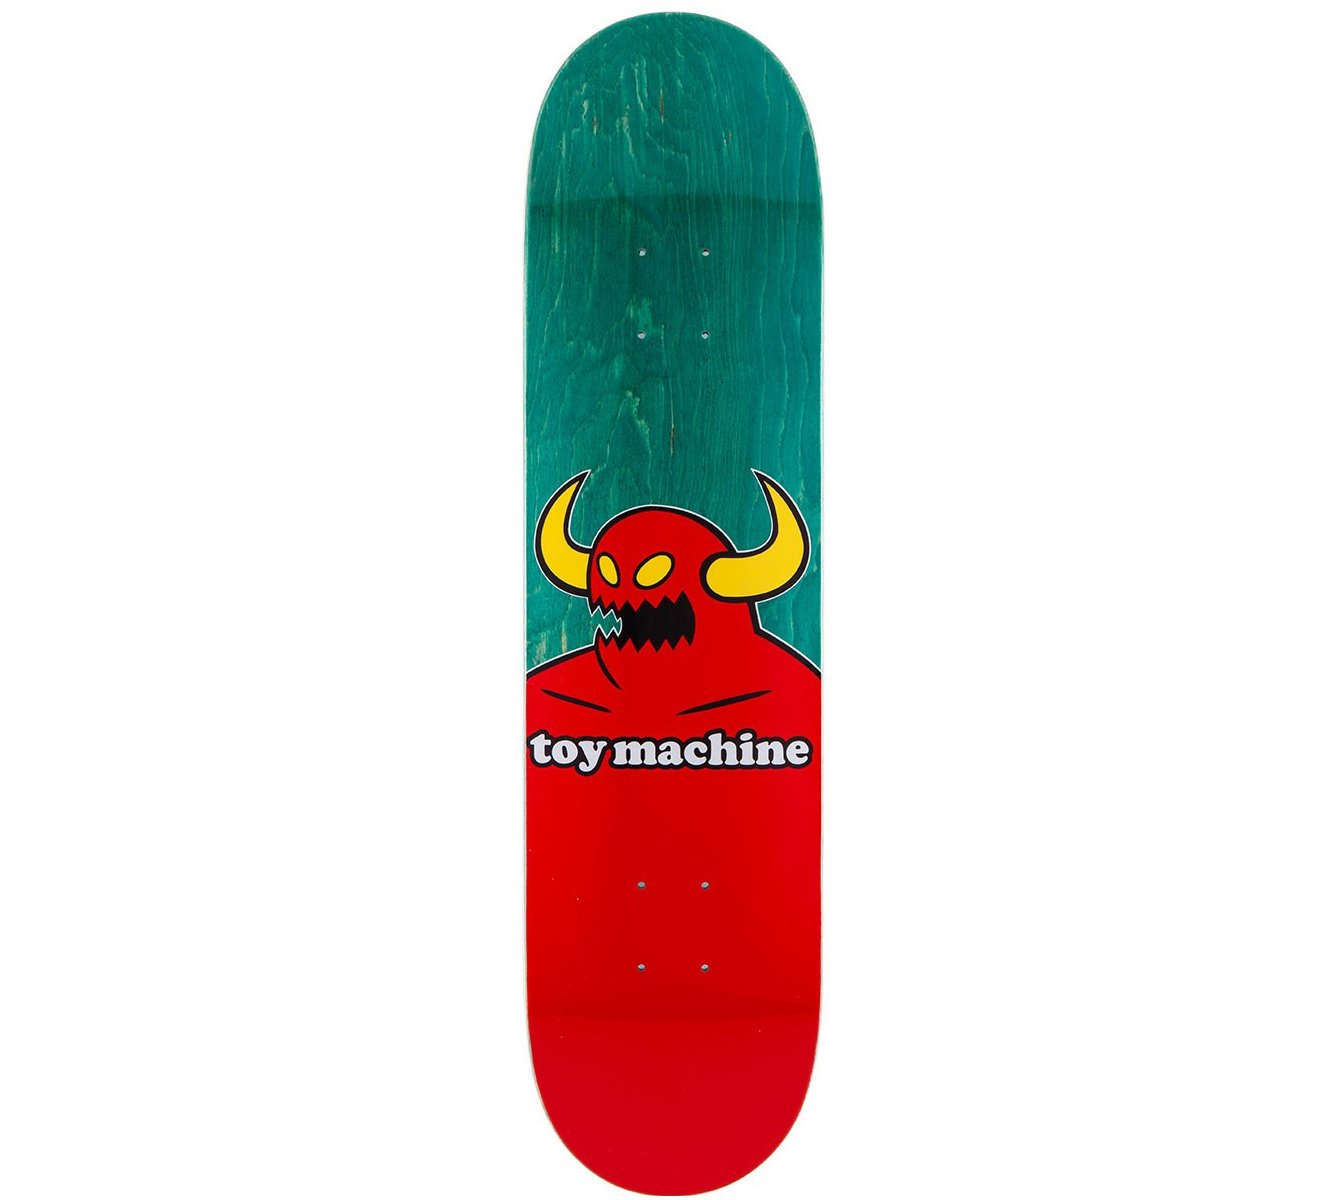 Toy Machine Skateboard Deck Monster (Assorted Colors) 8.0''